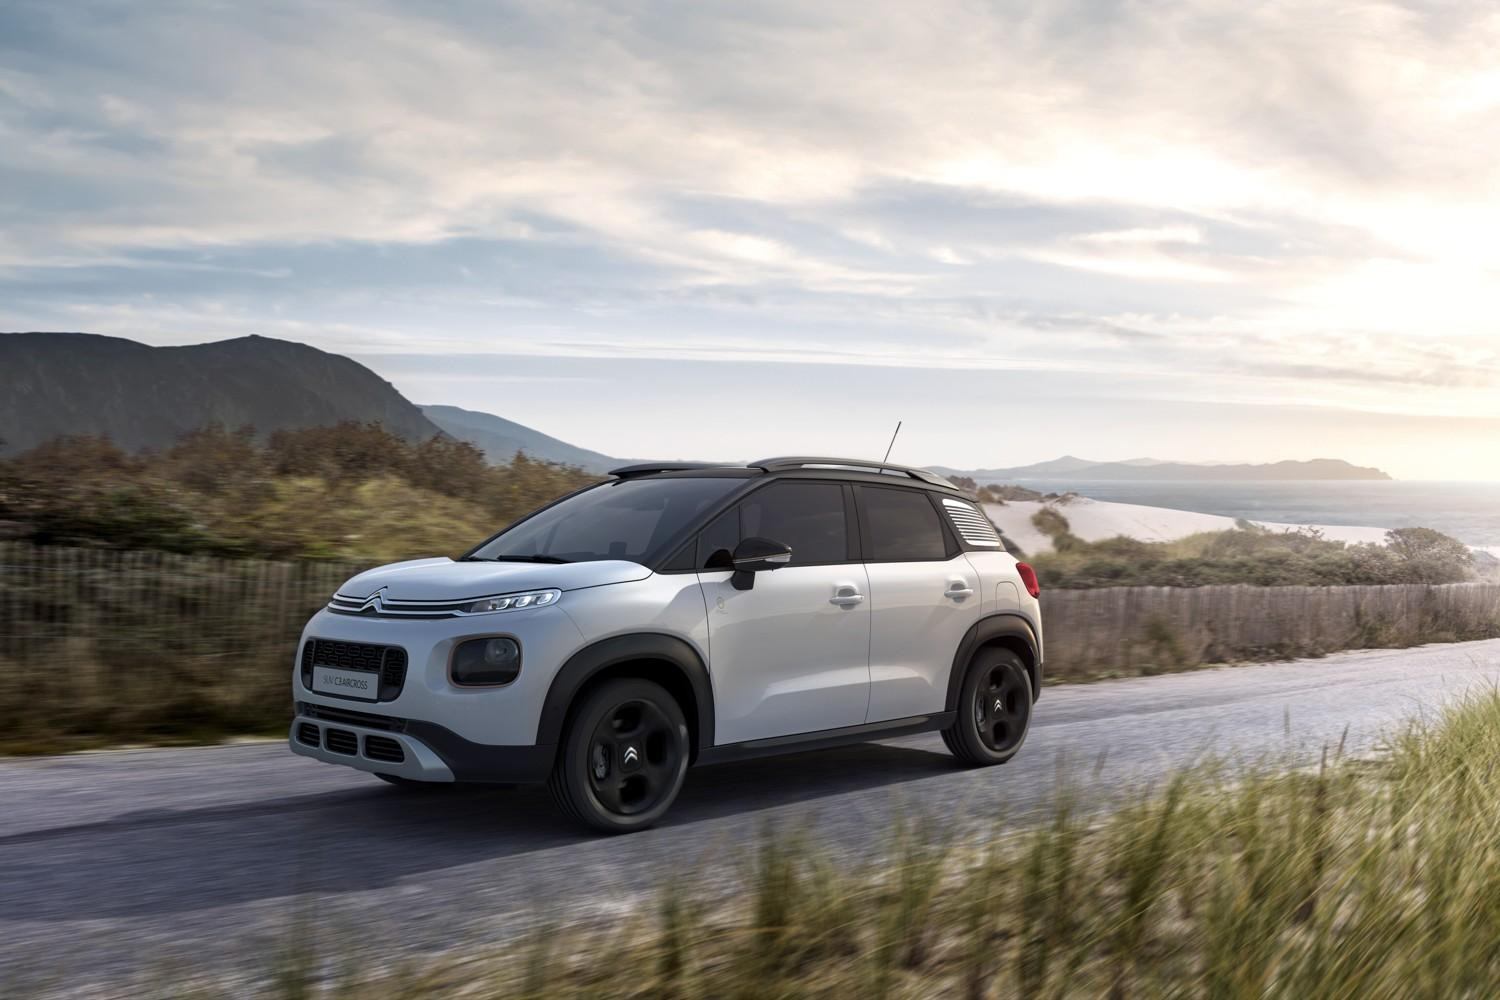 Citroen C3 Aircross Origins